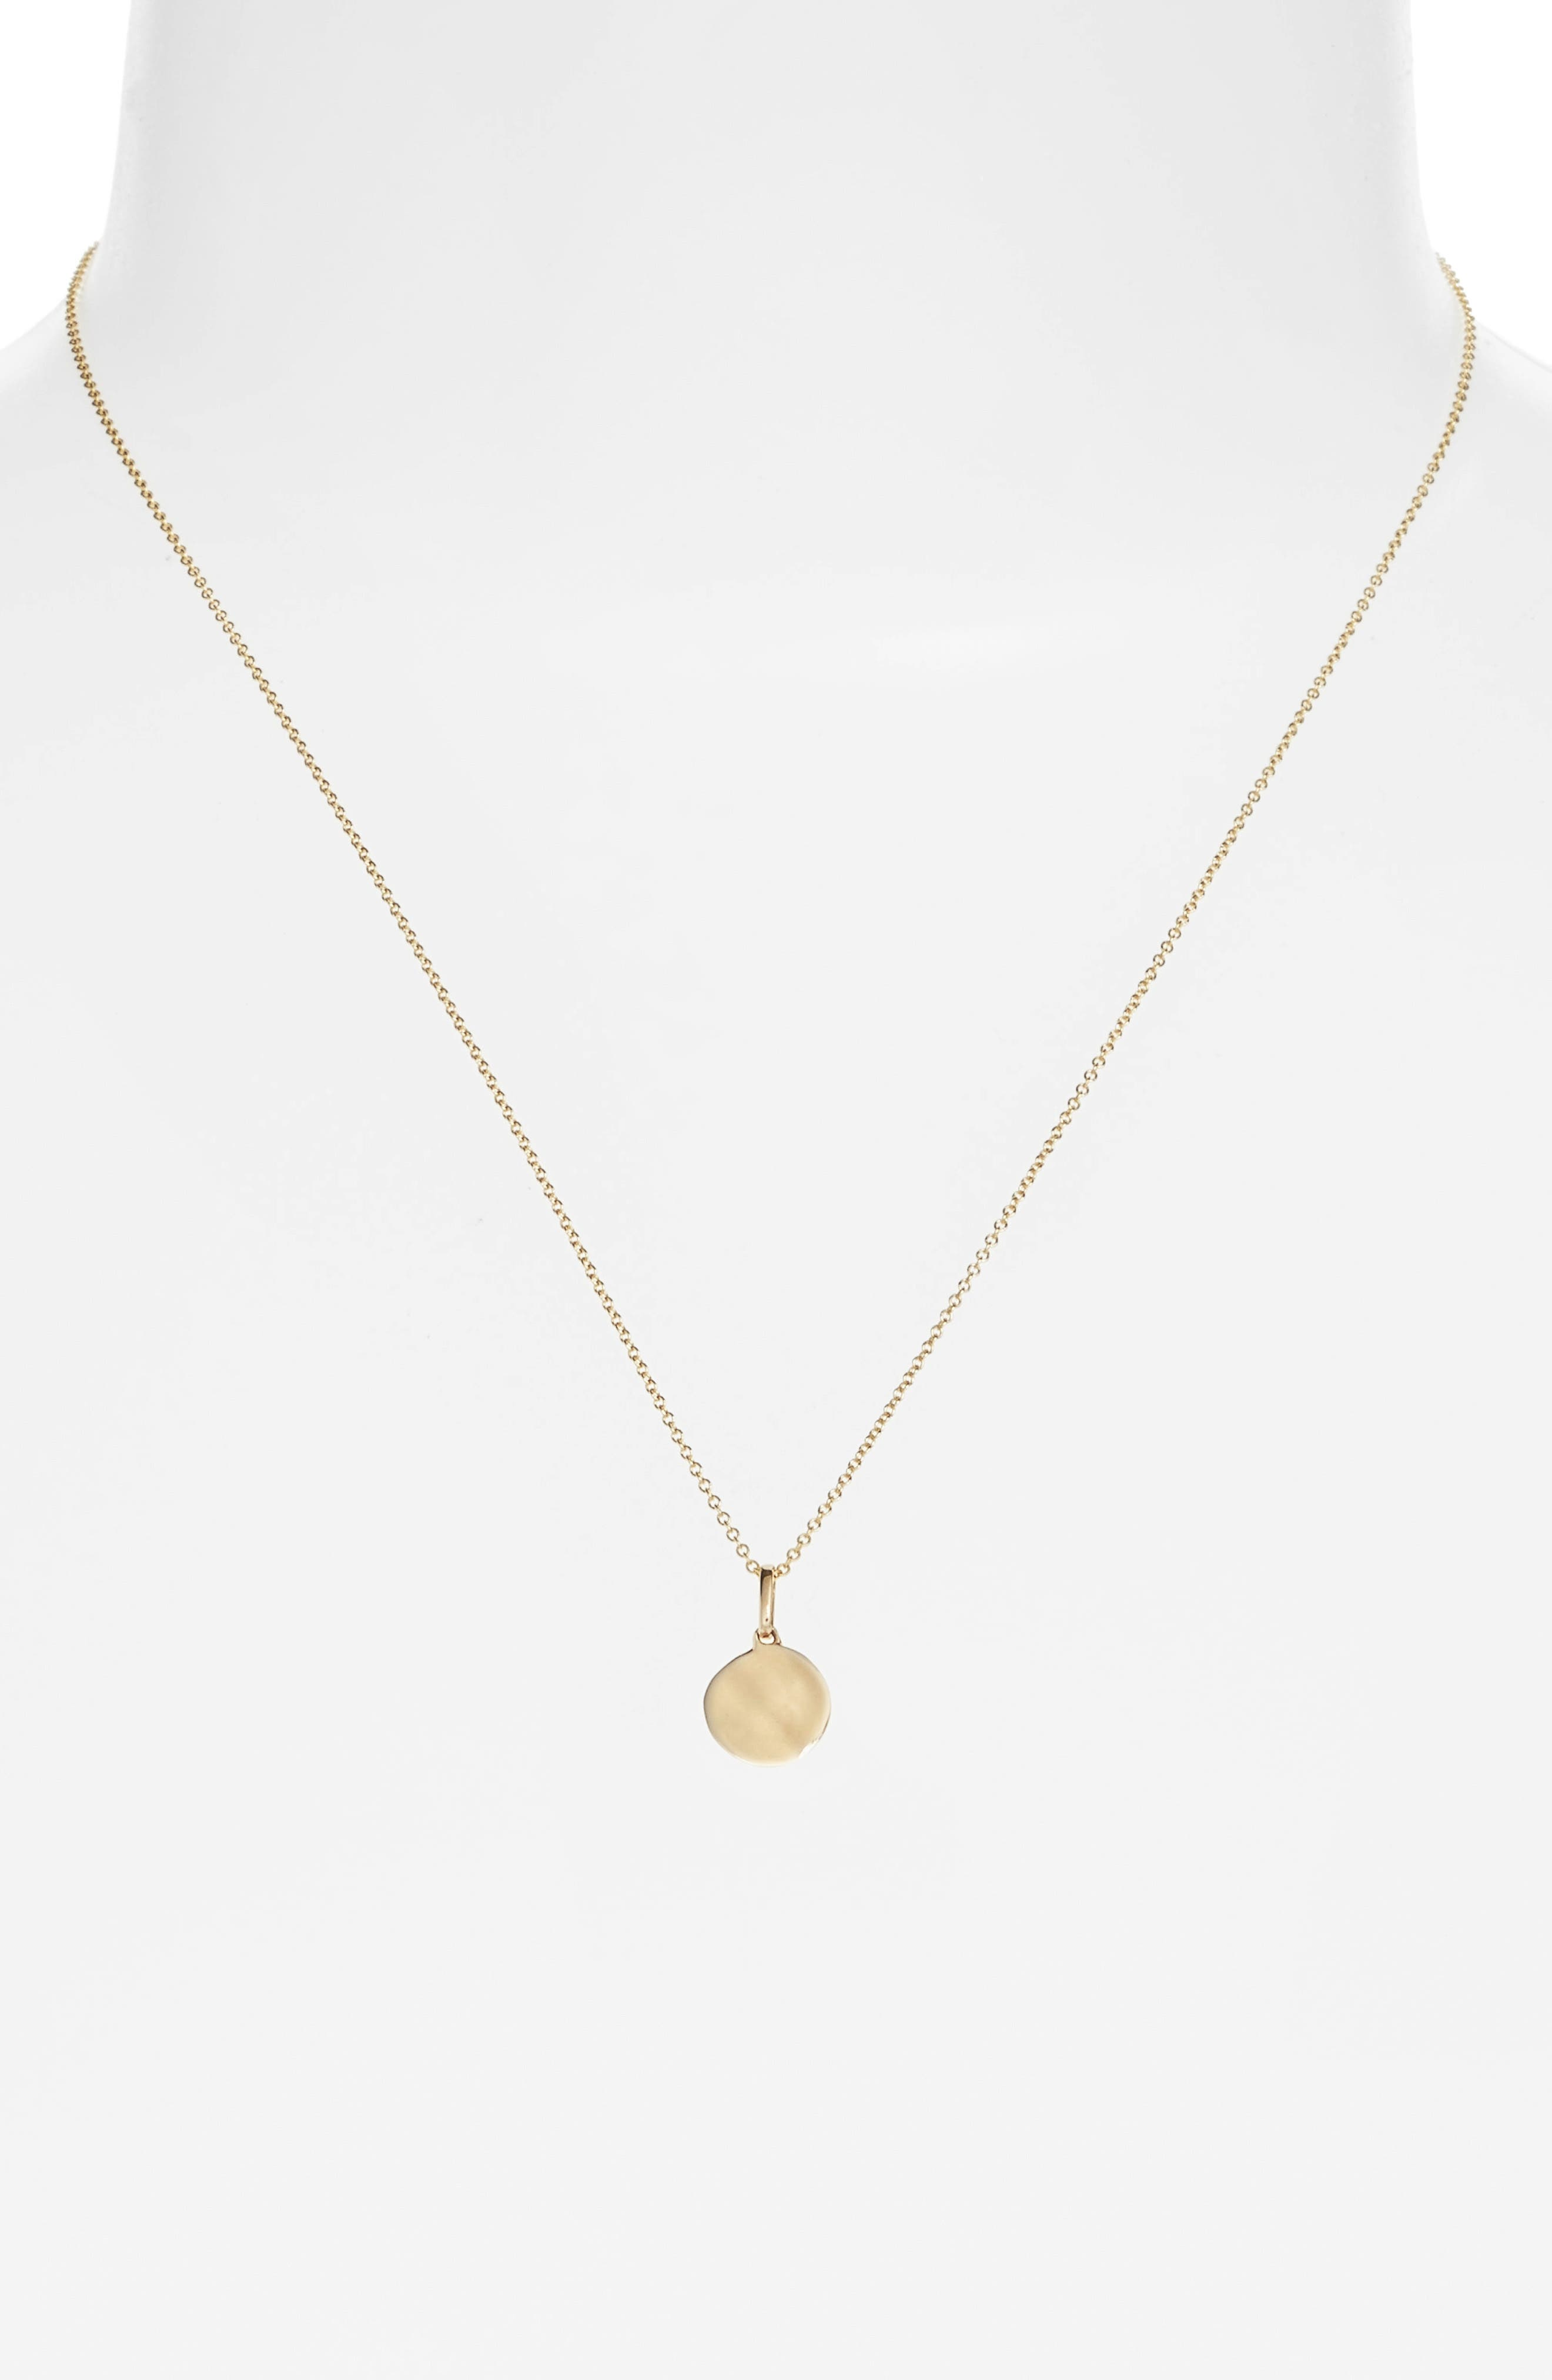 Alternate Image 1 Selected - Bony Levy Small Concave Pendant Necklace (Nordstrom Exclusive)